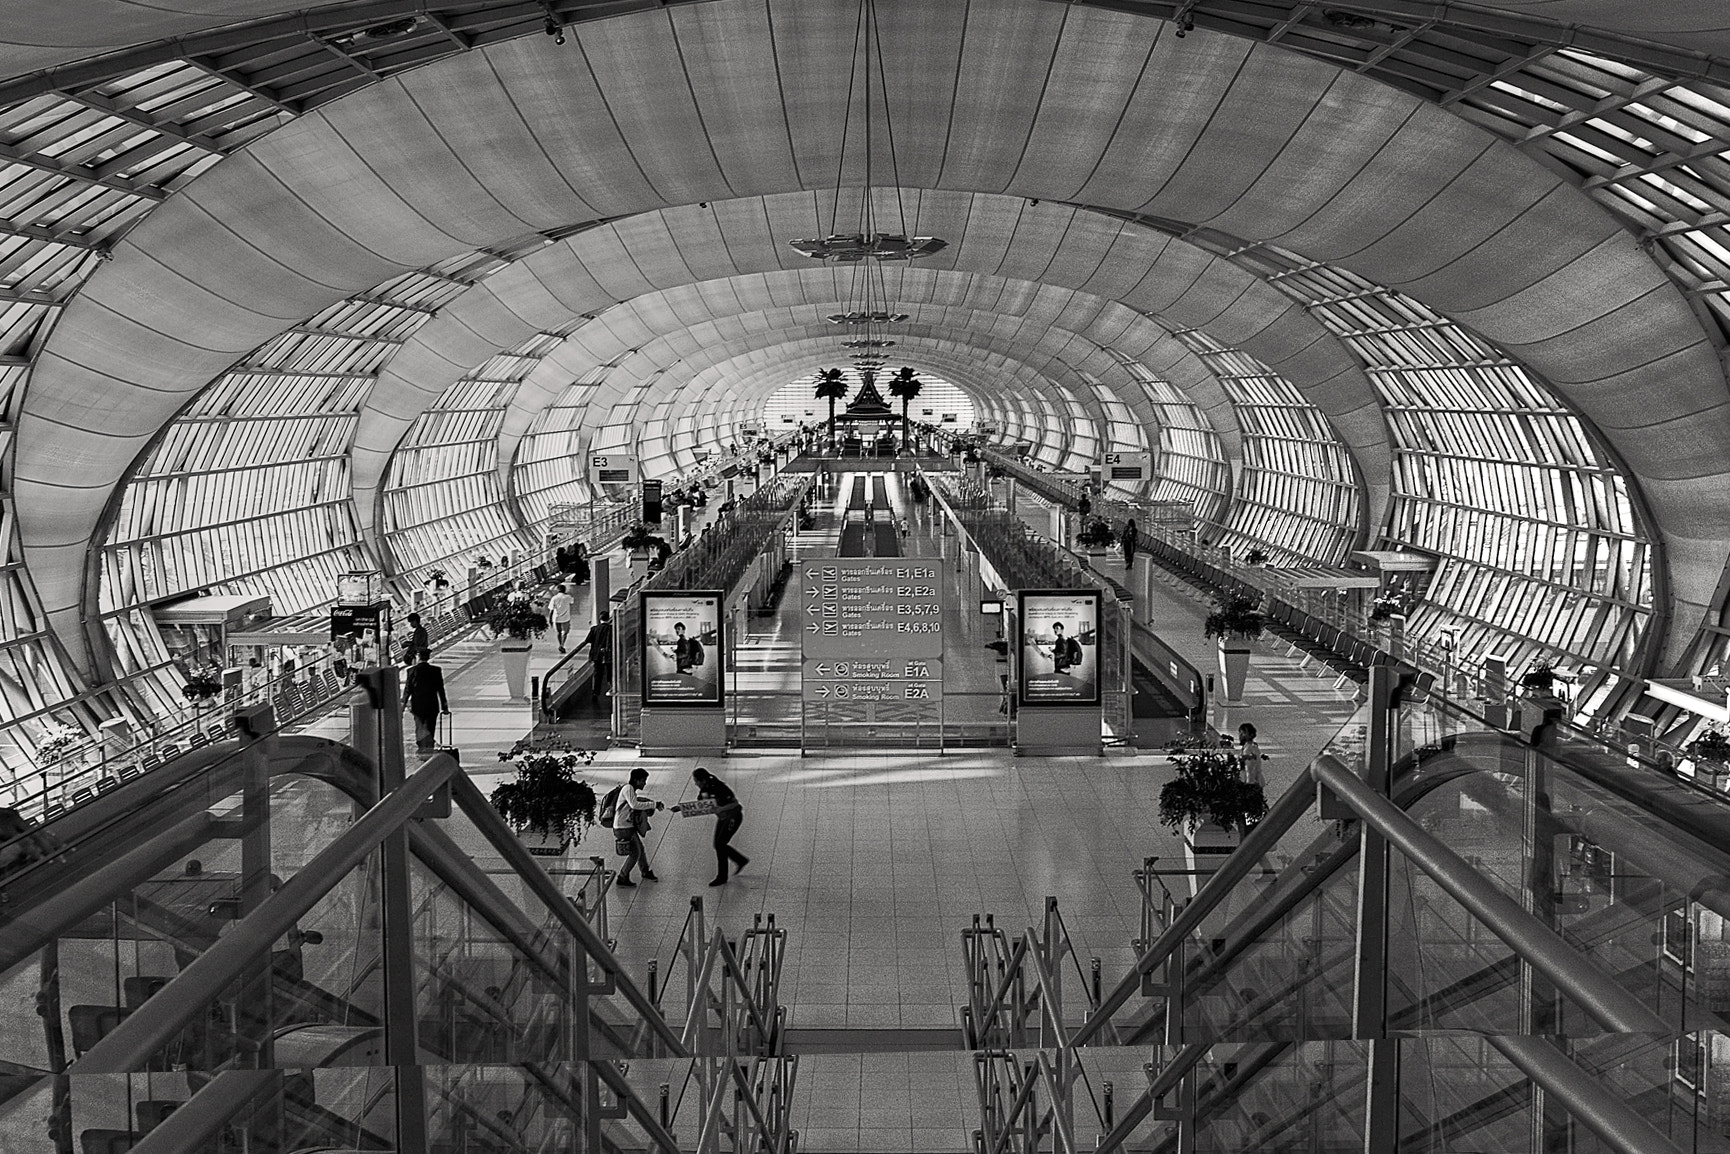 Photograph airport by Heine Melgaard on 500px